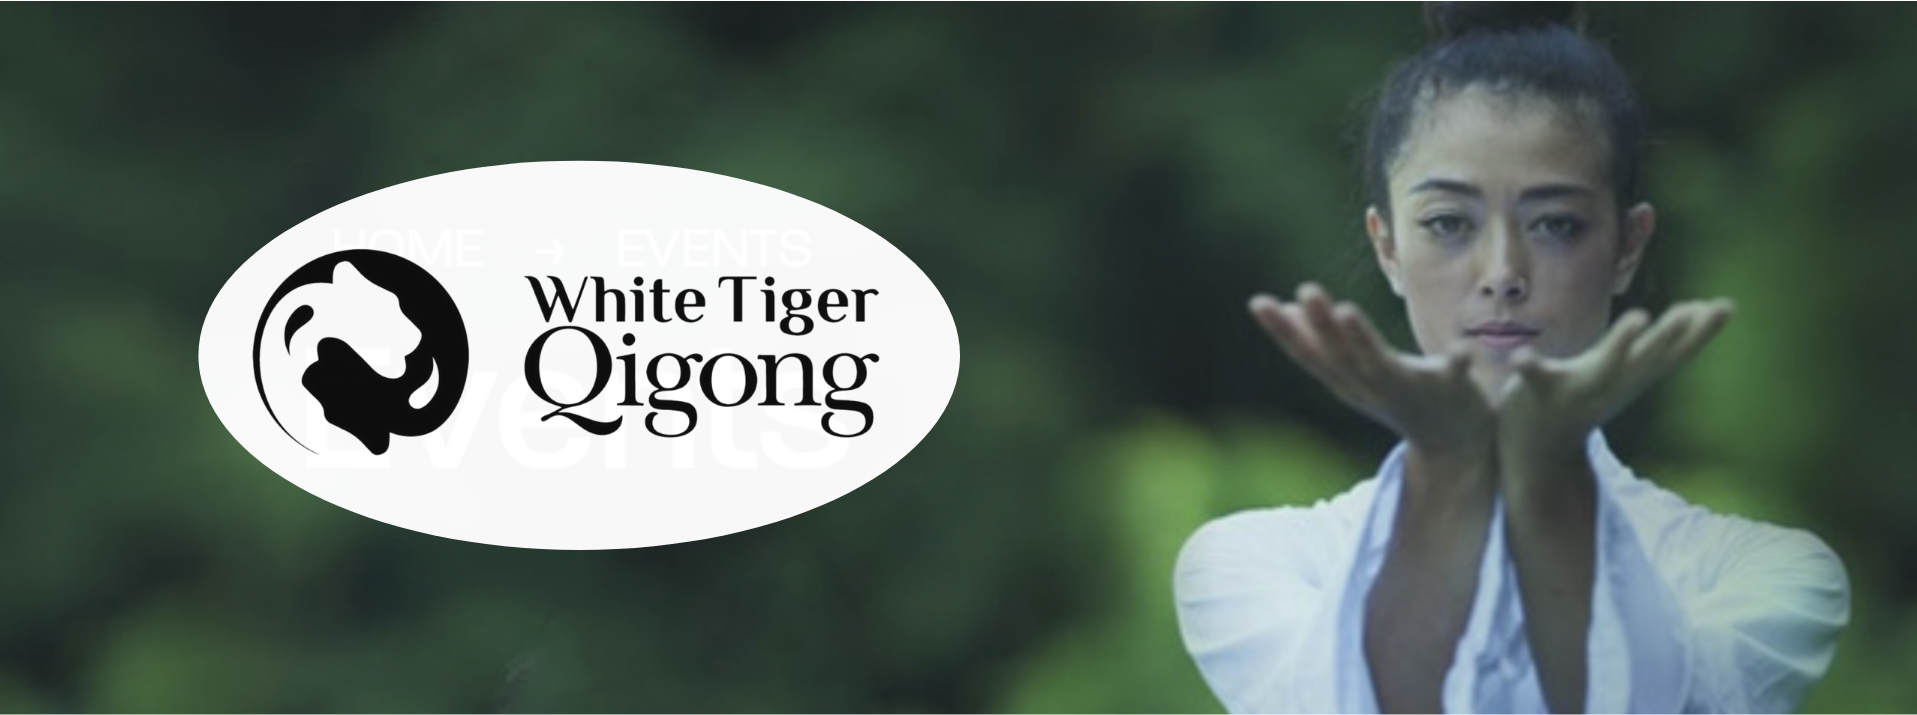 WHite Tiger Qigong woman practiticing